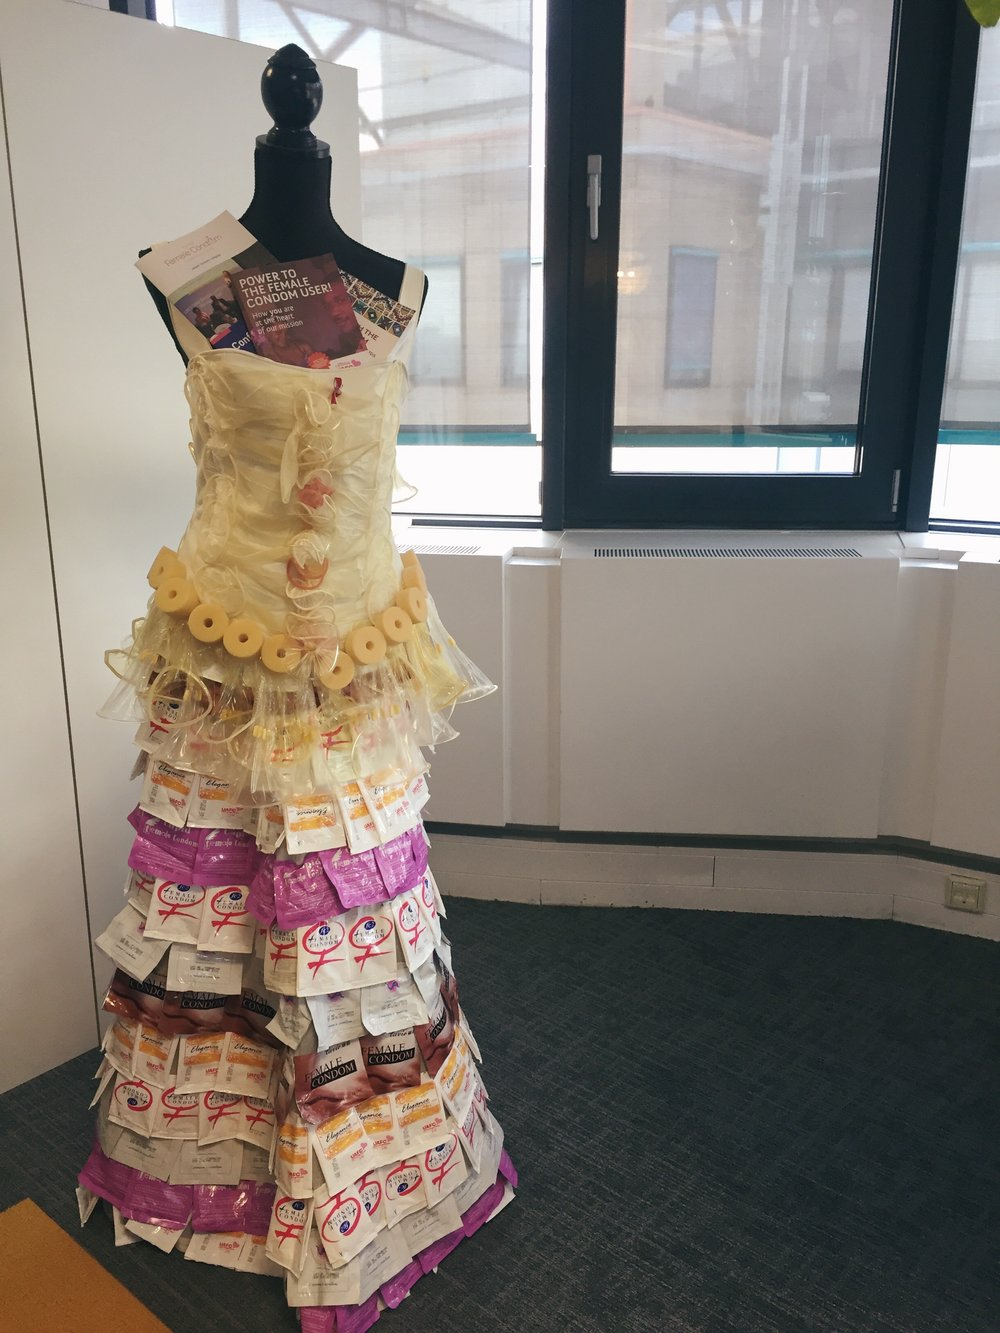 I mean, worse comes to worse and you don't like Internal Condoms, you can always make a dress out of them <3